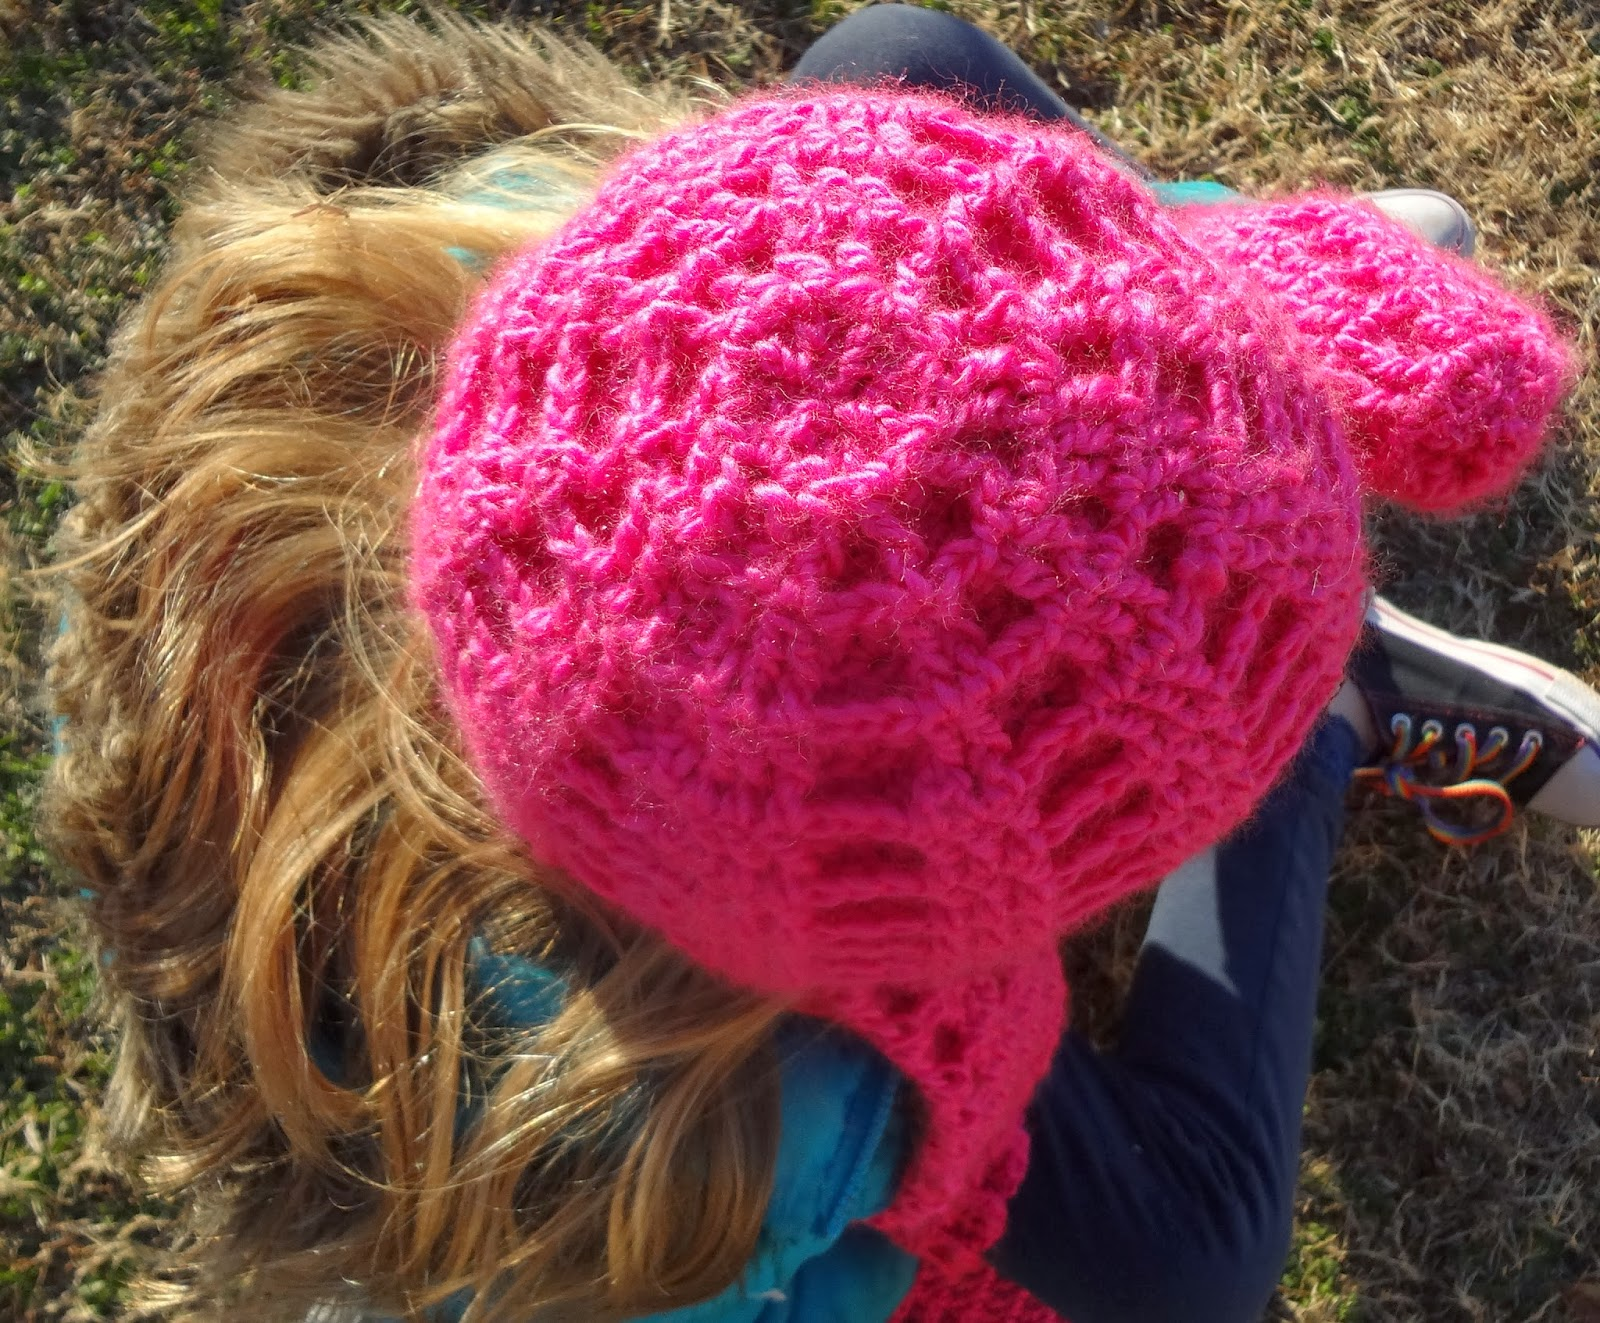 Looking down at the top of a crochet hat in hot pink with matching scarf and mittens.